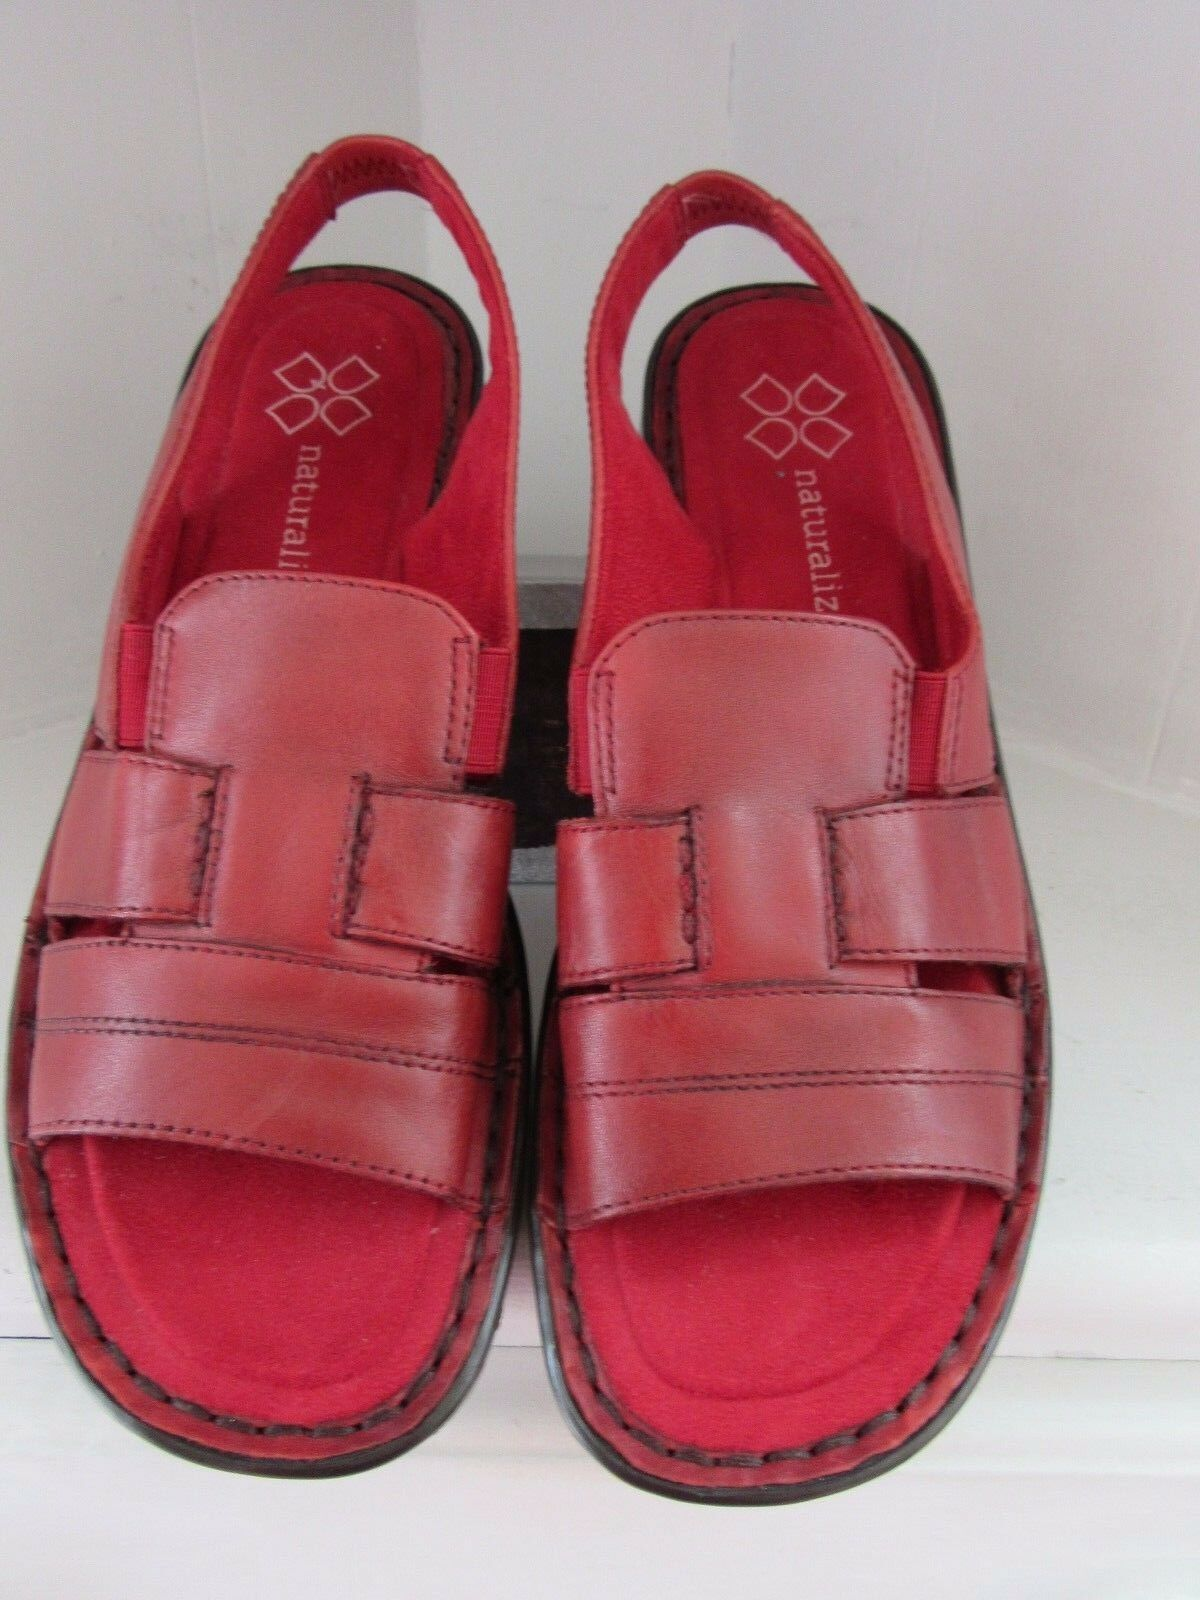 Naturalizer Leather Sandals Walking Womens Size 7.5 M Red Slingback Walking Sandals Shoes Casa cd976a